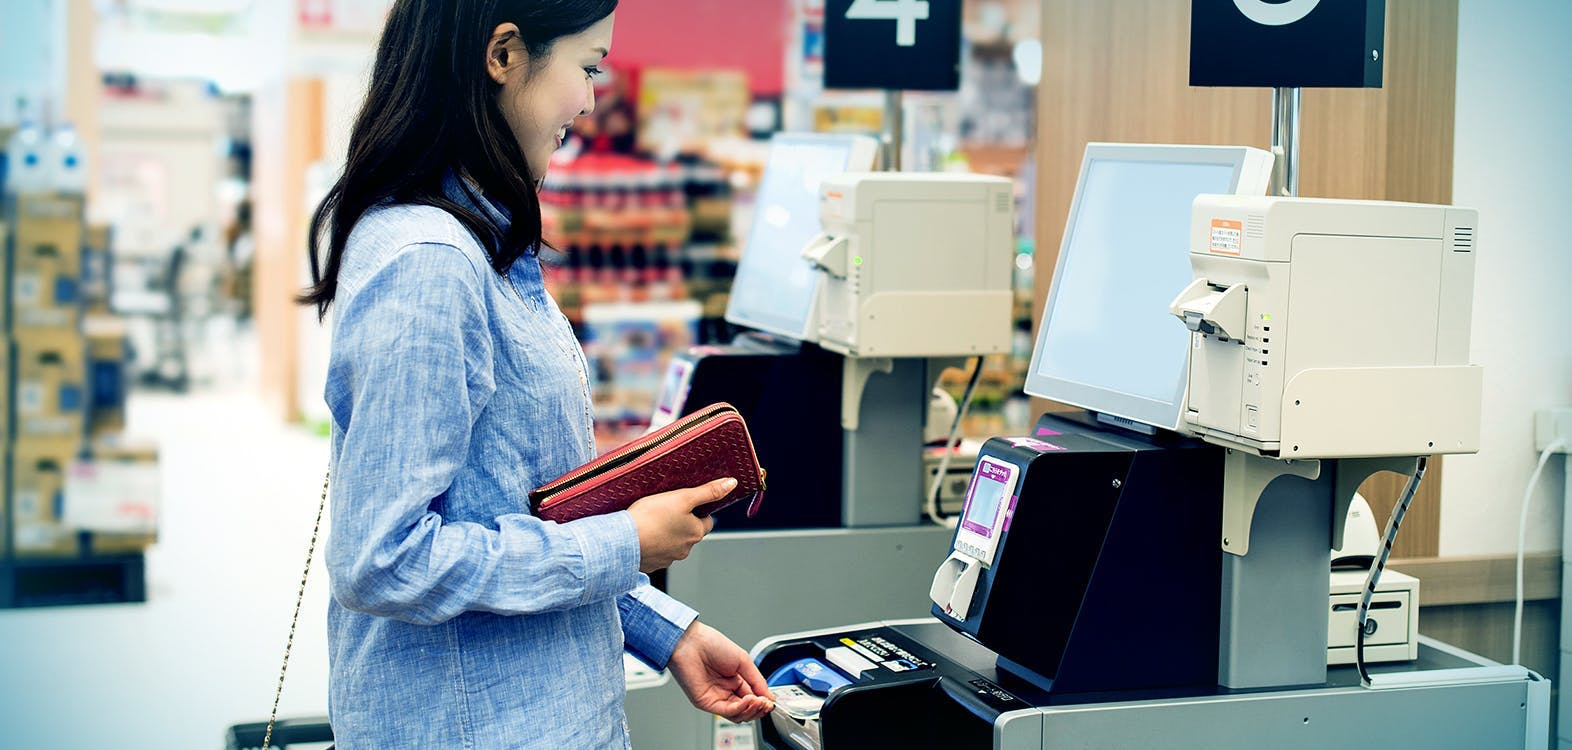 woman getting cash from a self checkout